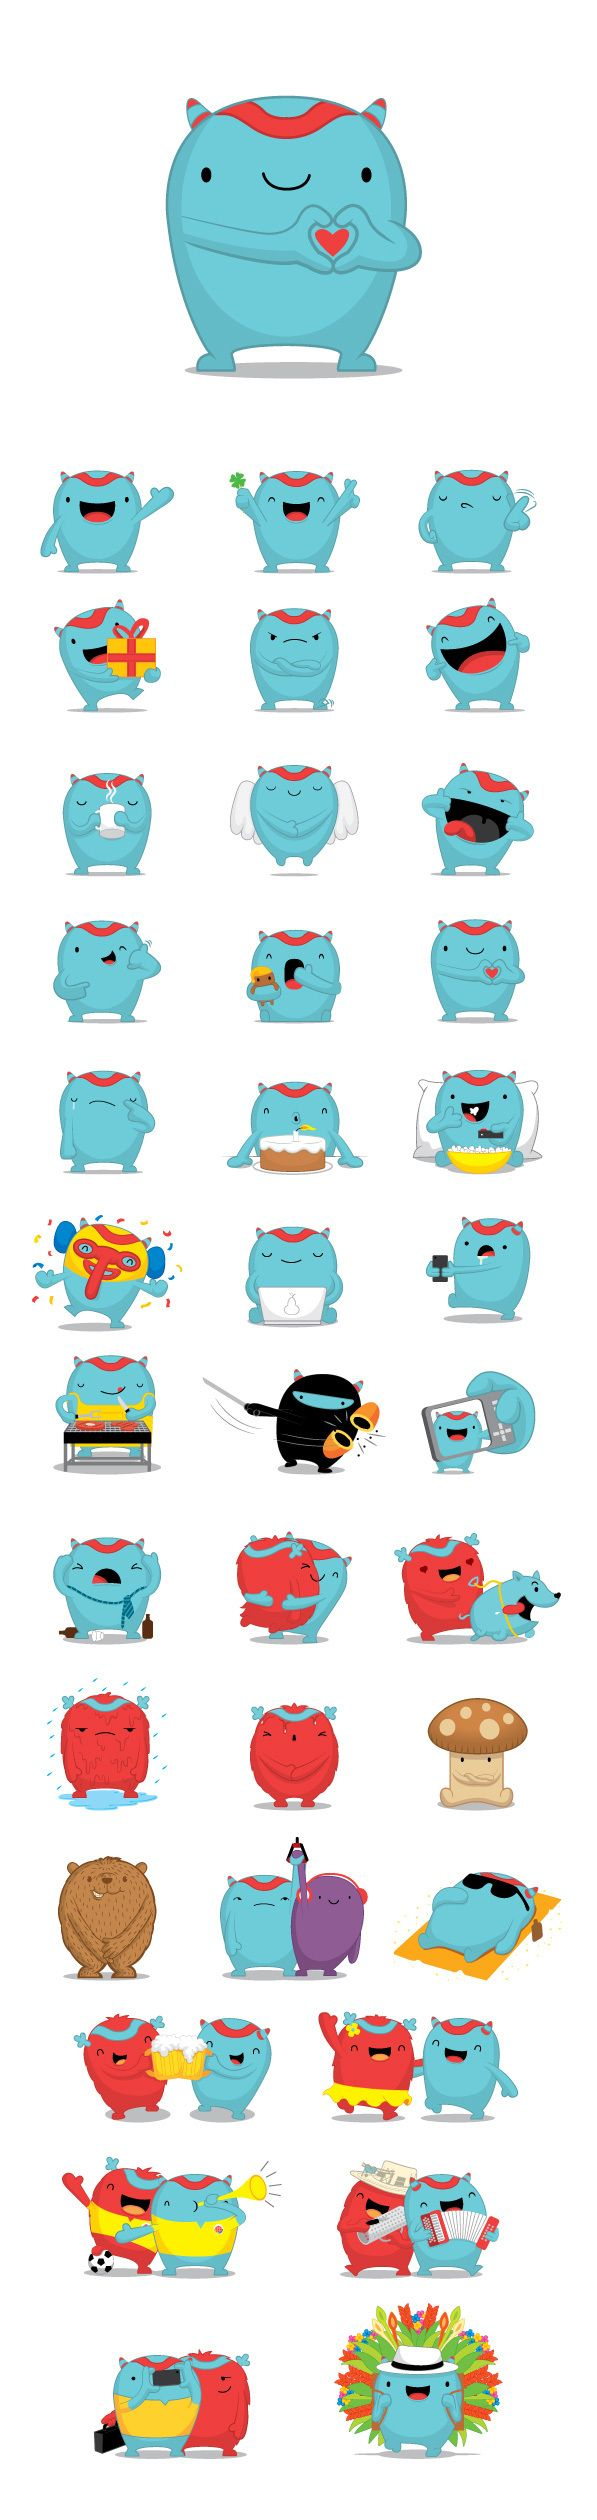 Adorable Stickers For Facebook Messenger By Oscar Ospina | Creatives Magnet